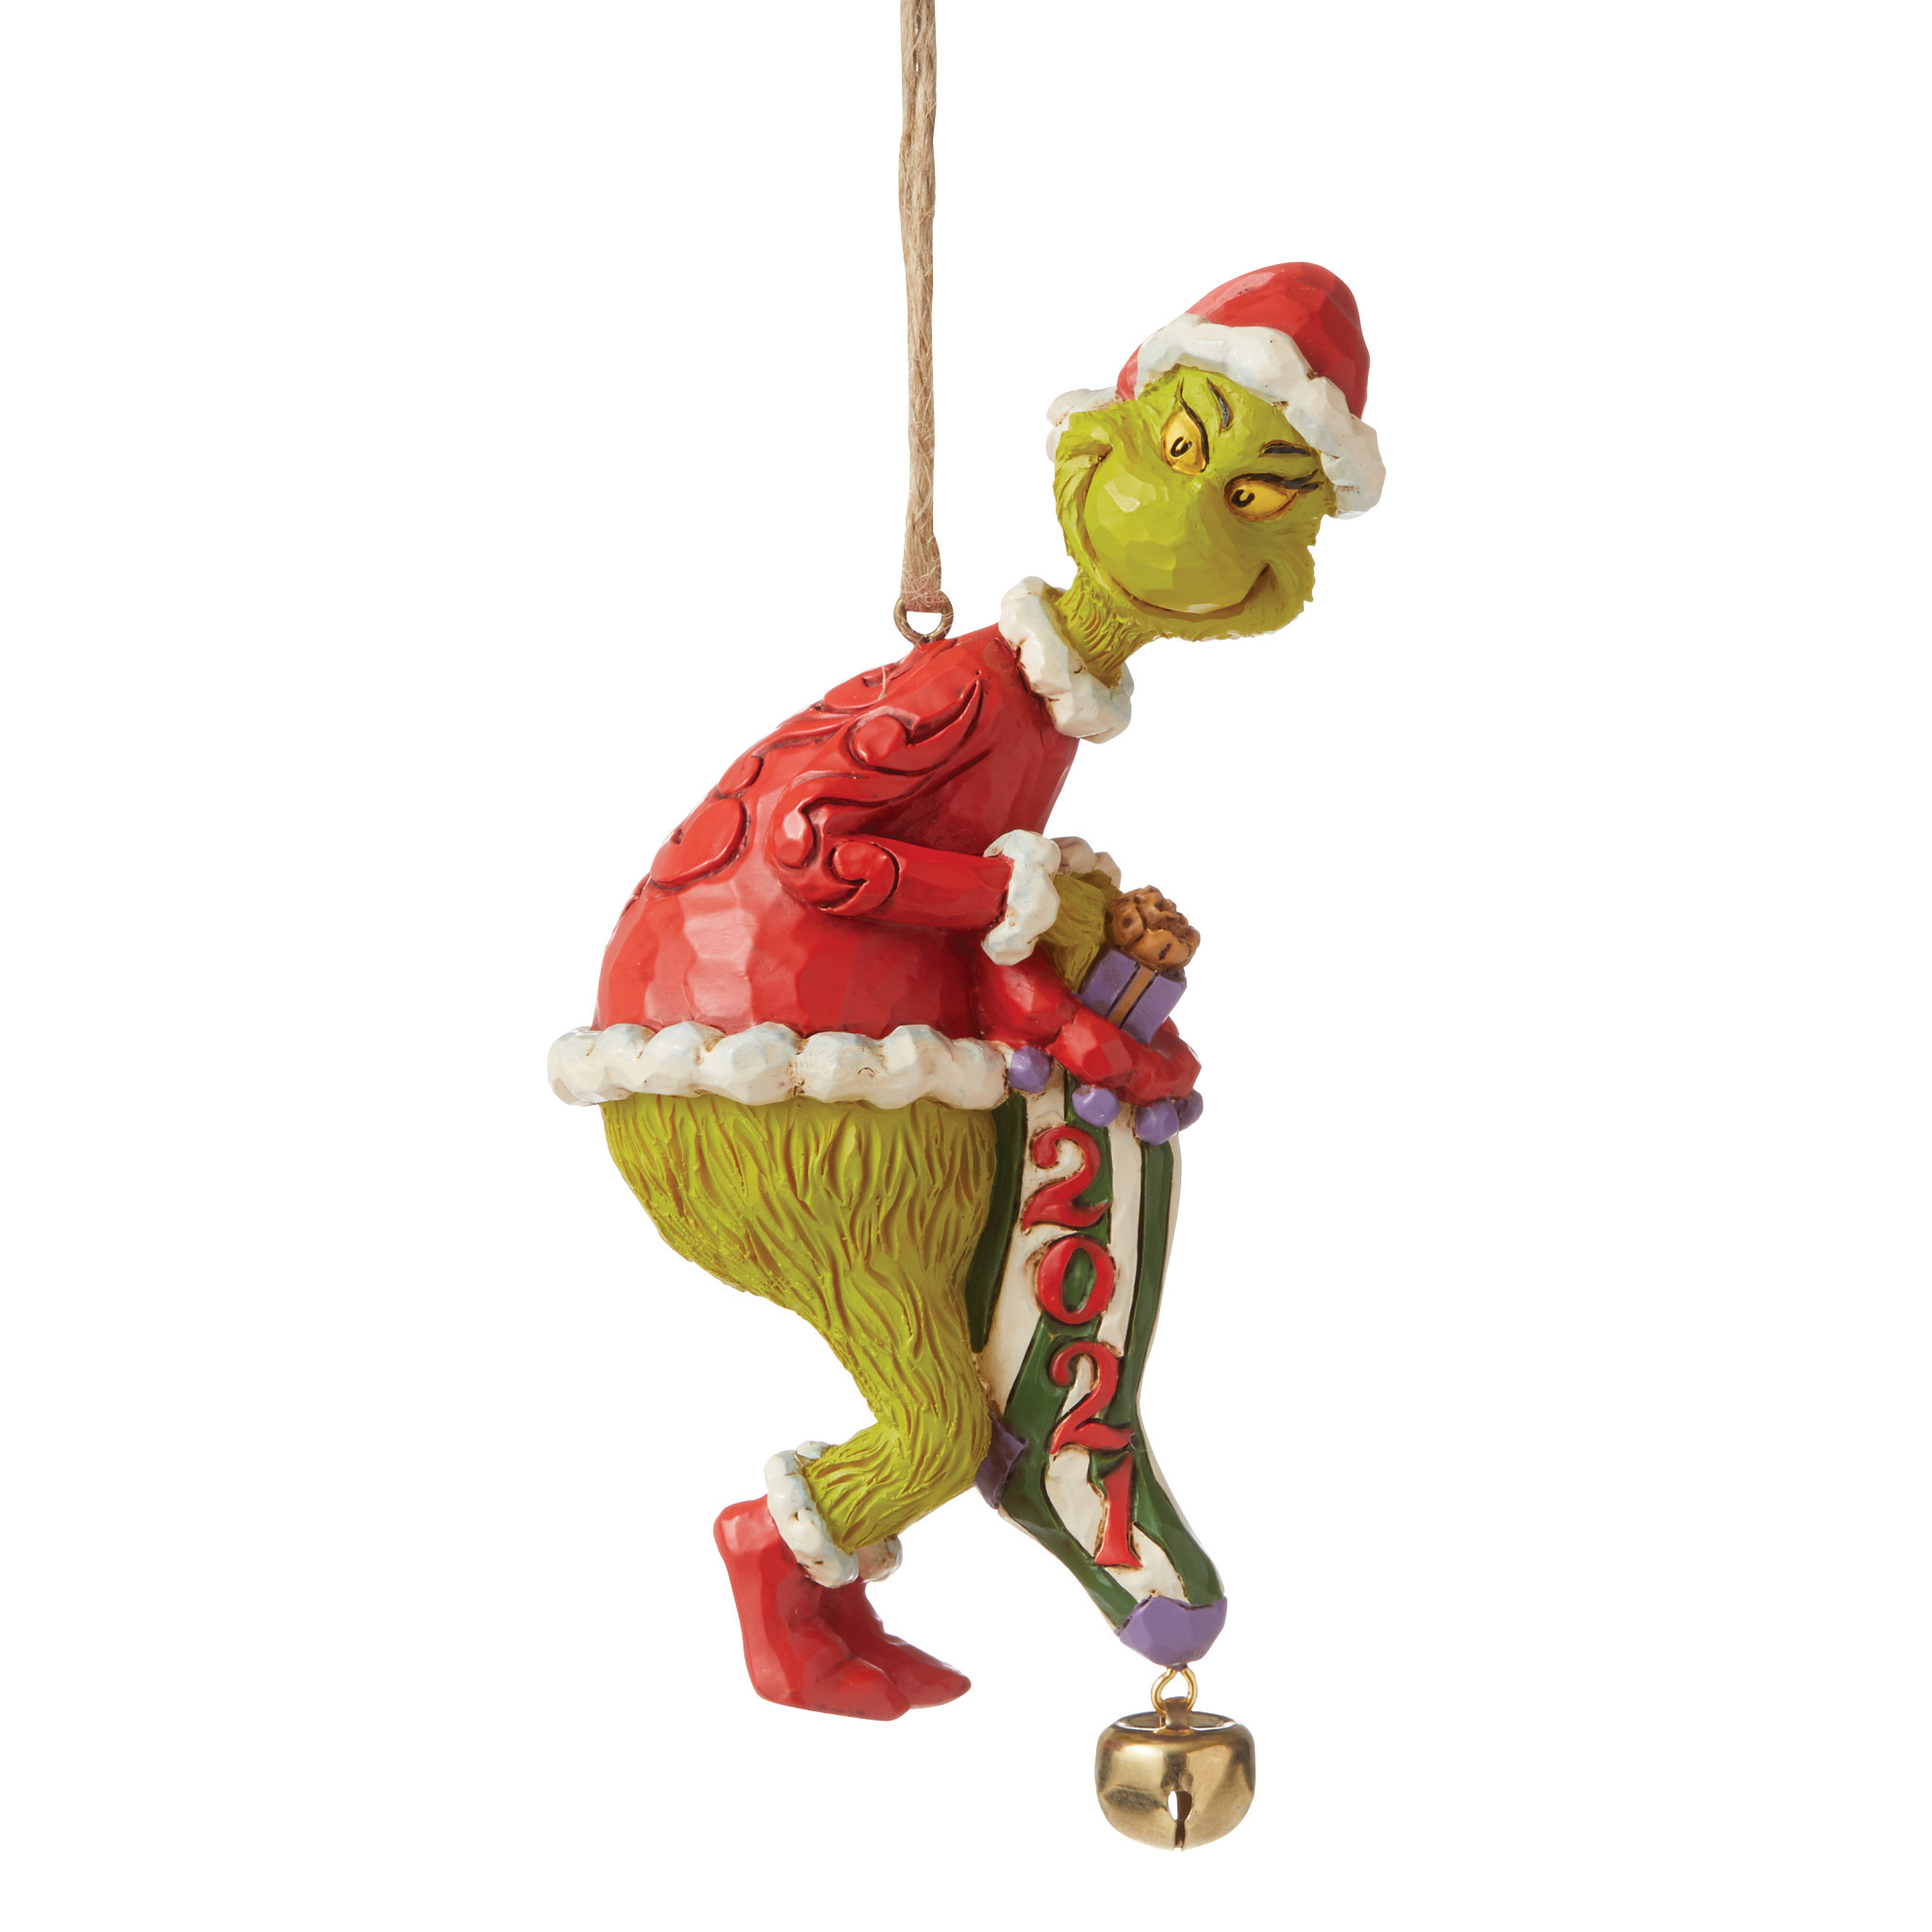 Jim Shore - Christmas Accessories 'Dated Grinch Stealing Stocking (Hanging Ornament) N' 2021